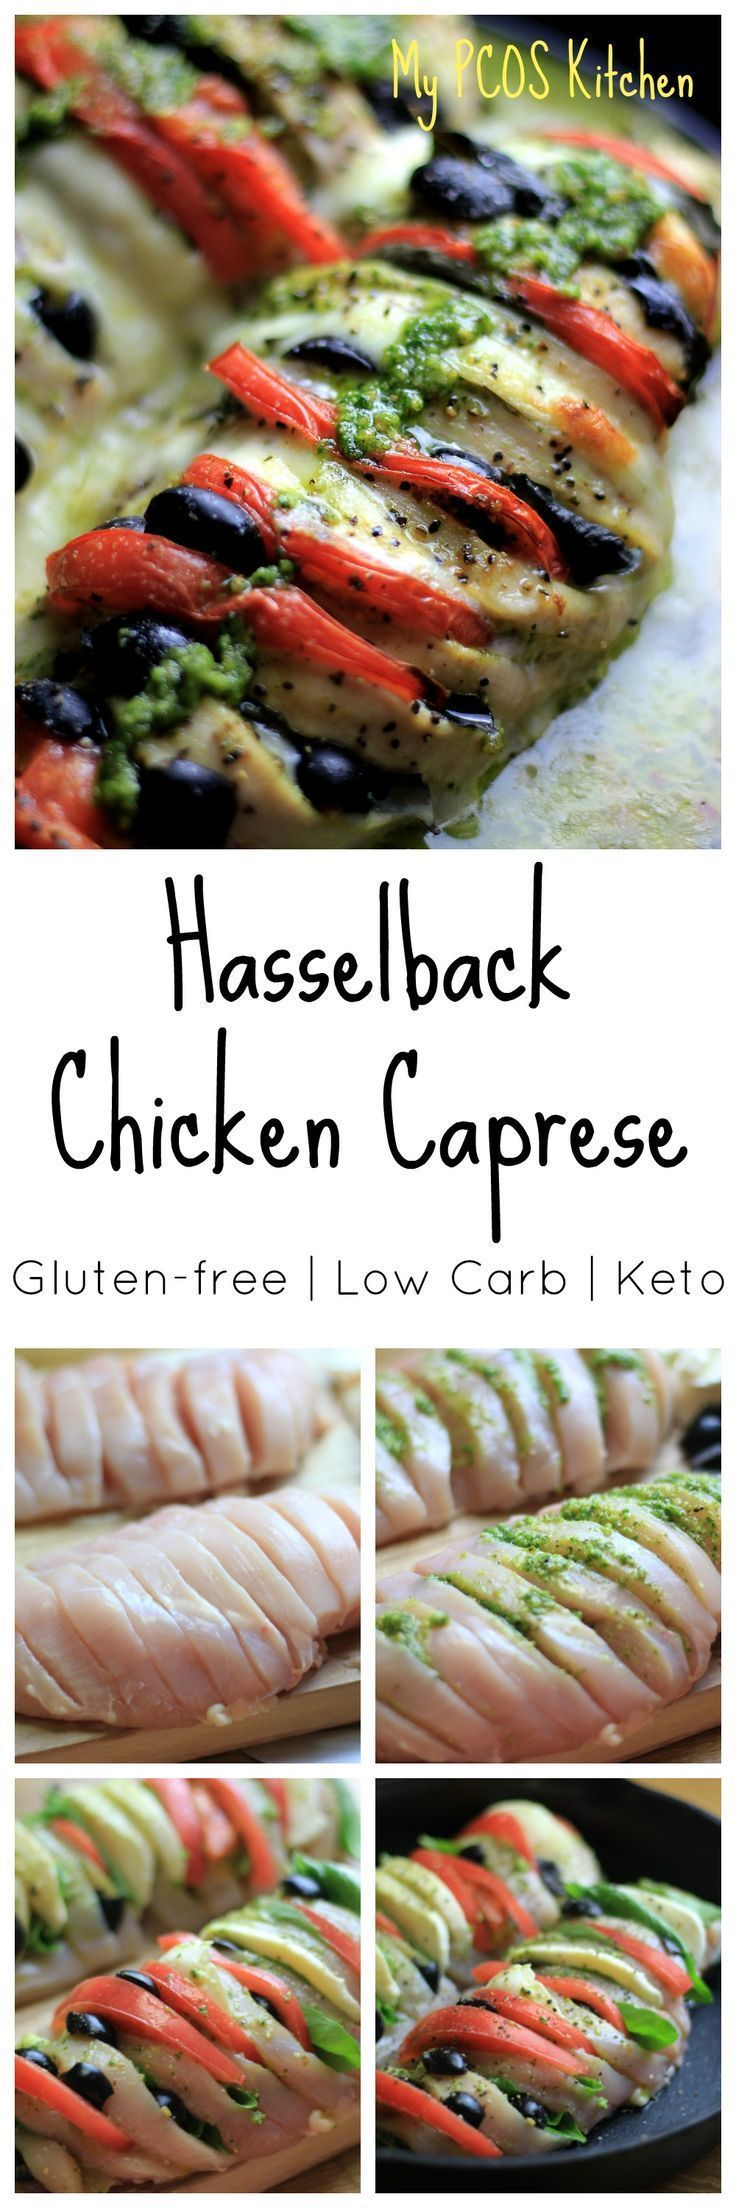 My PCOS Kitchen - Hasselback Chicken Caprese - A chicken breast sliced and stuffed with fresh mozzarella, pesto, tomatoes, basil and olives. Keto/low carb #keto #lowcarb #chicken #italian